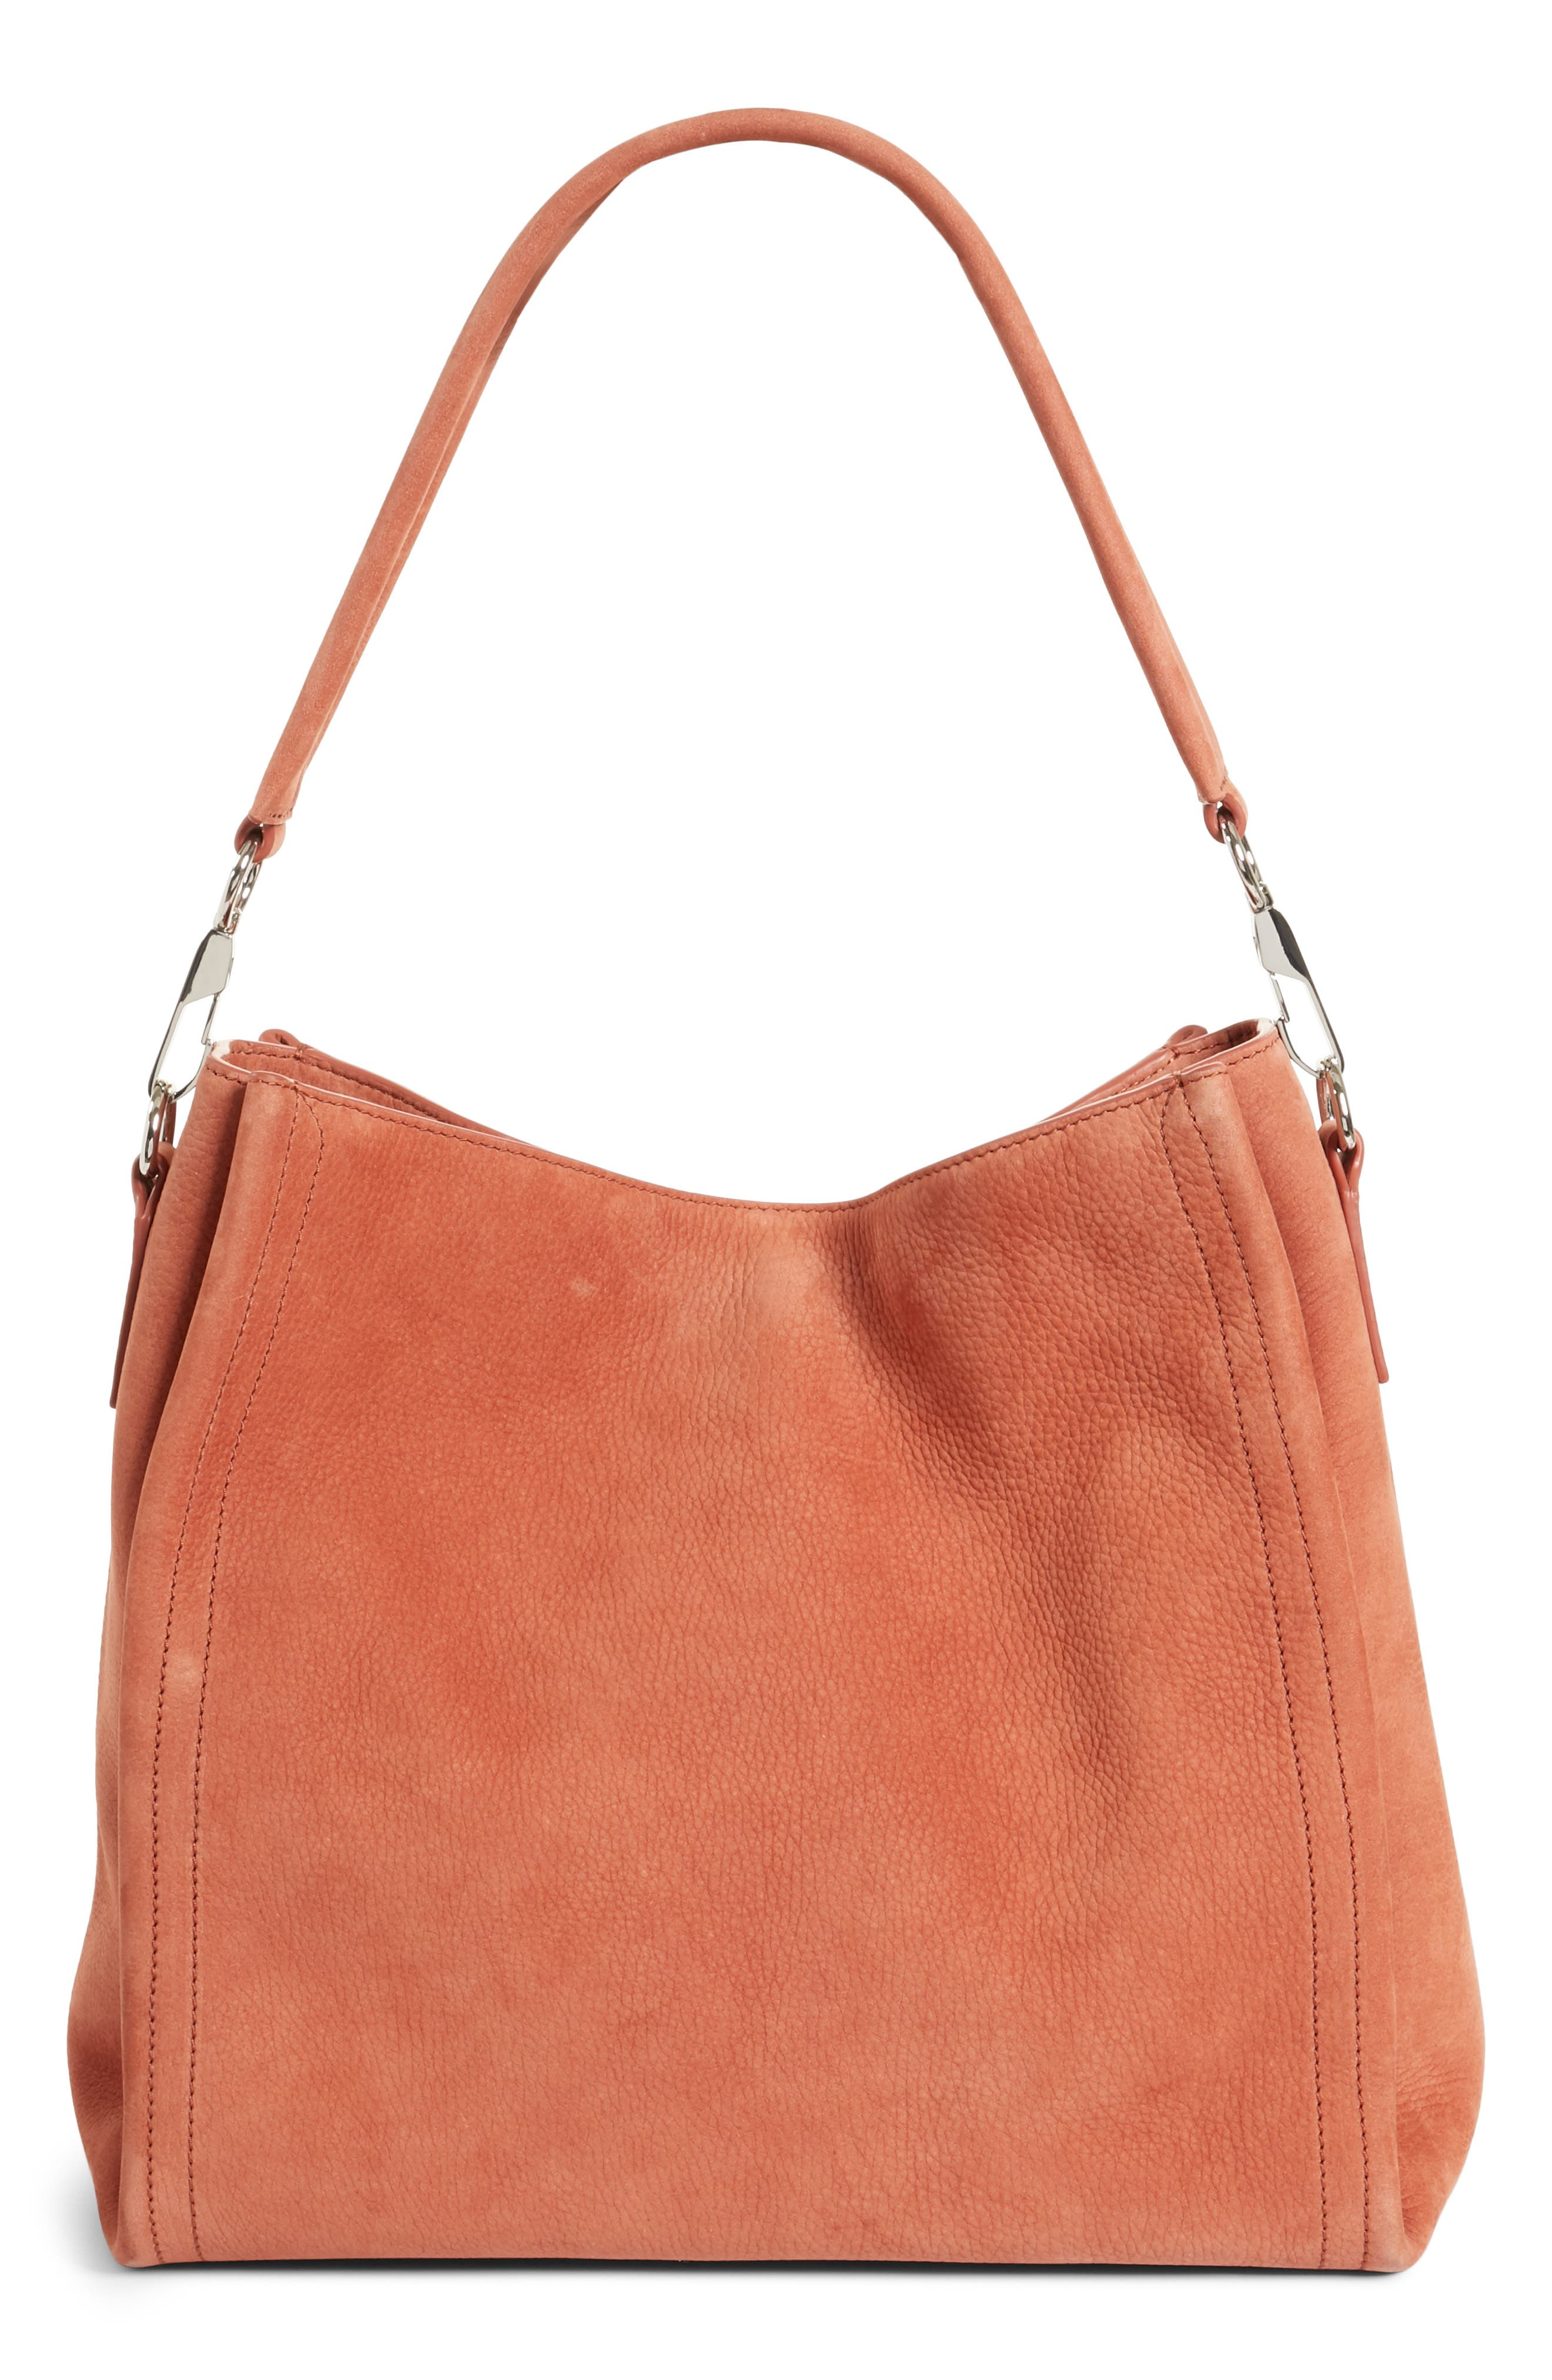 Darcy Pebbled Leather Hobo by Alexander Wang